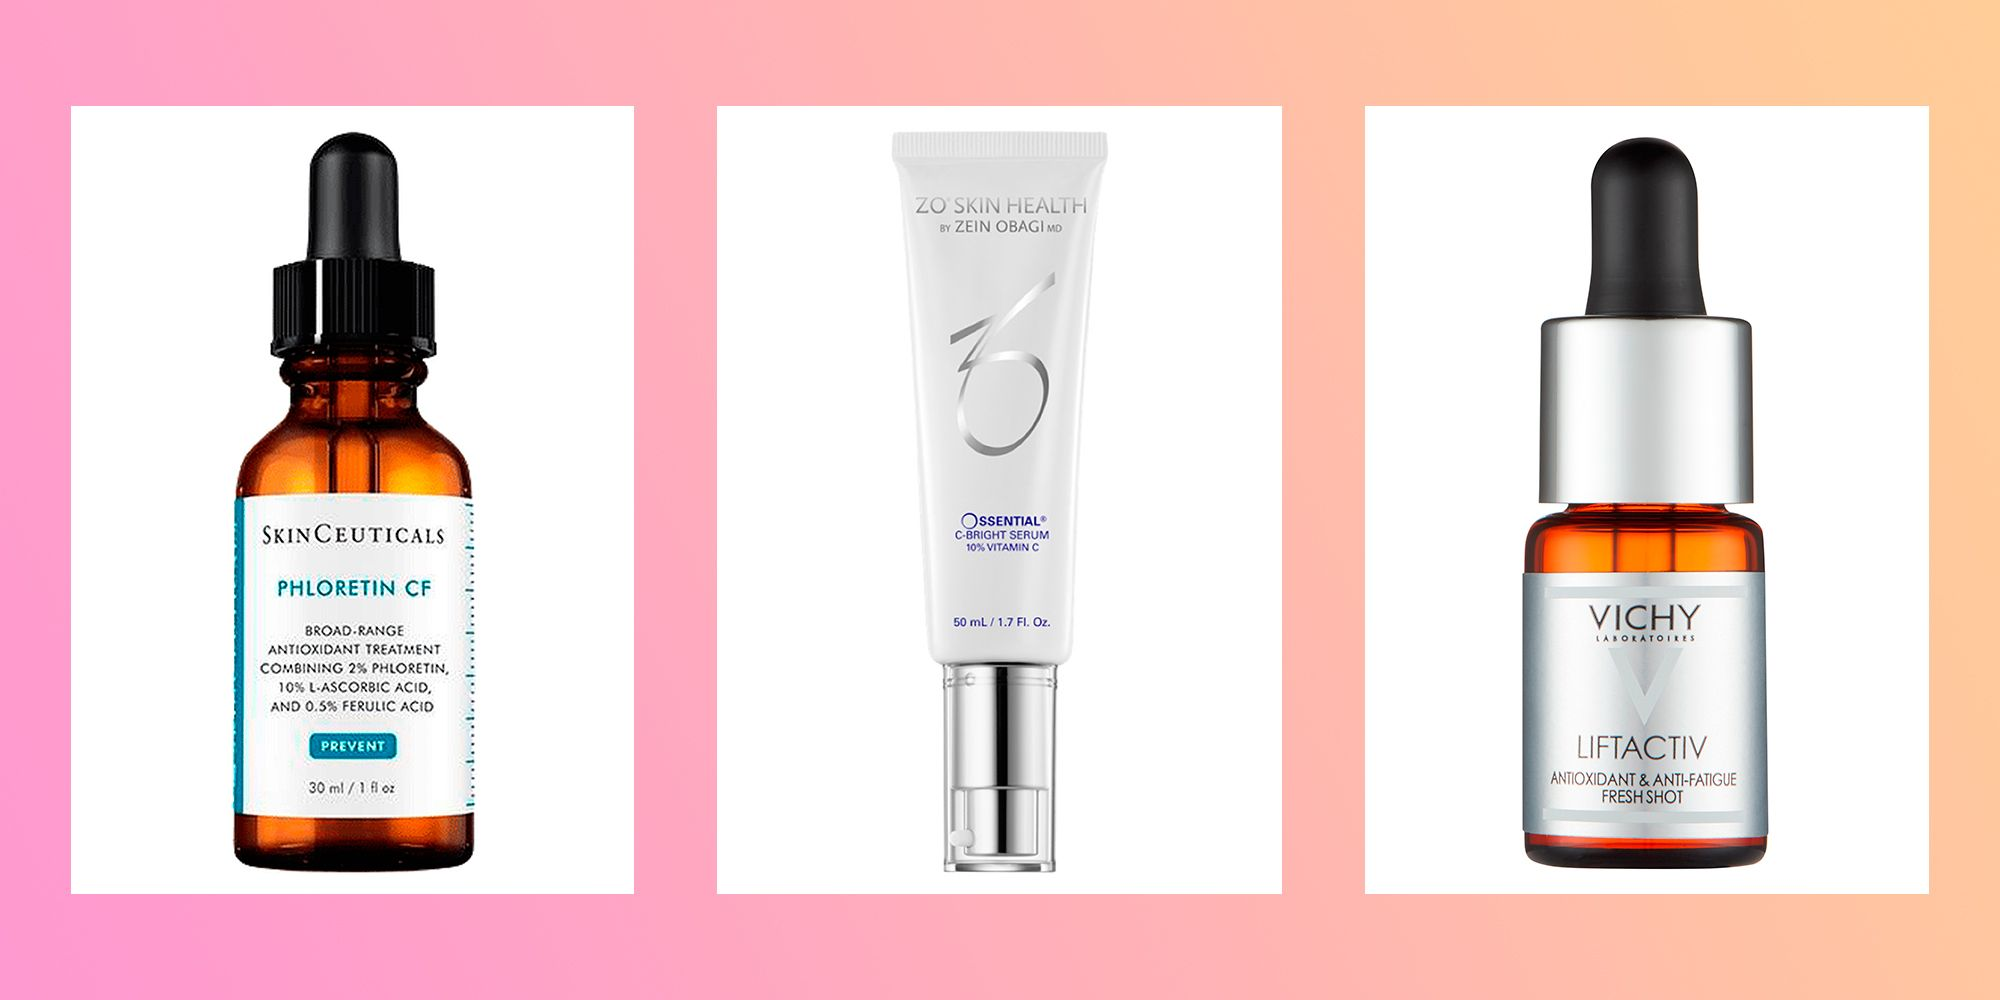 7 vitamin C serums that actually work - according to dermatologists